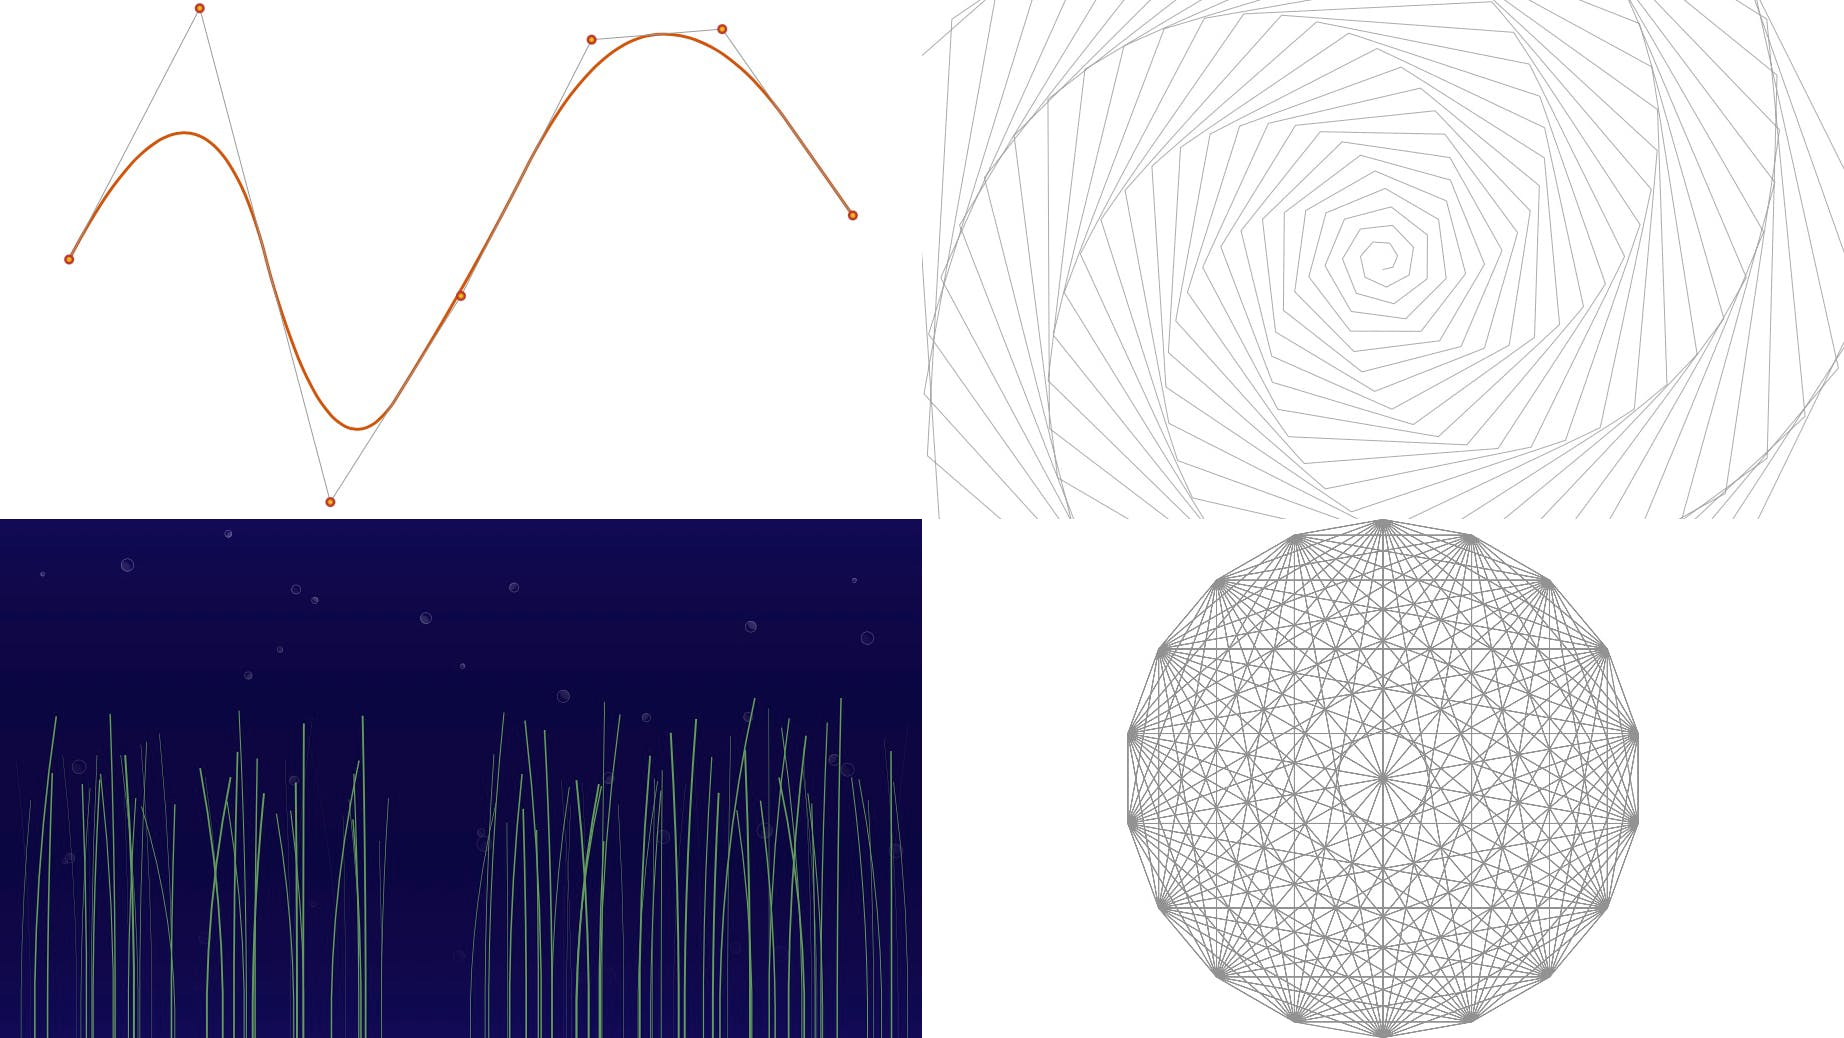 Renders of my CSS Houdini experiments